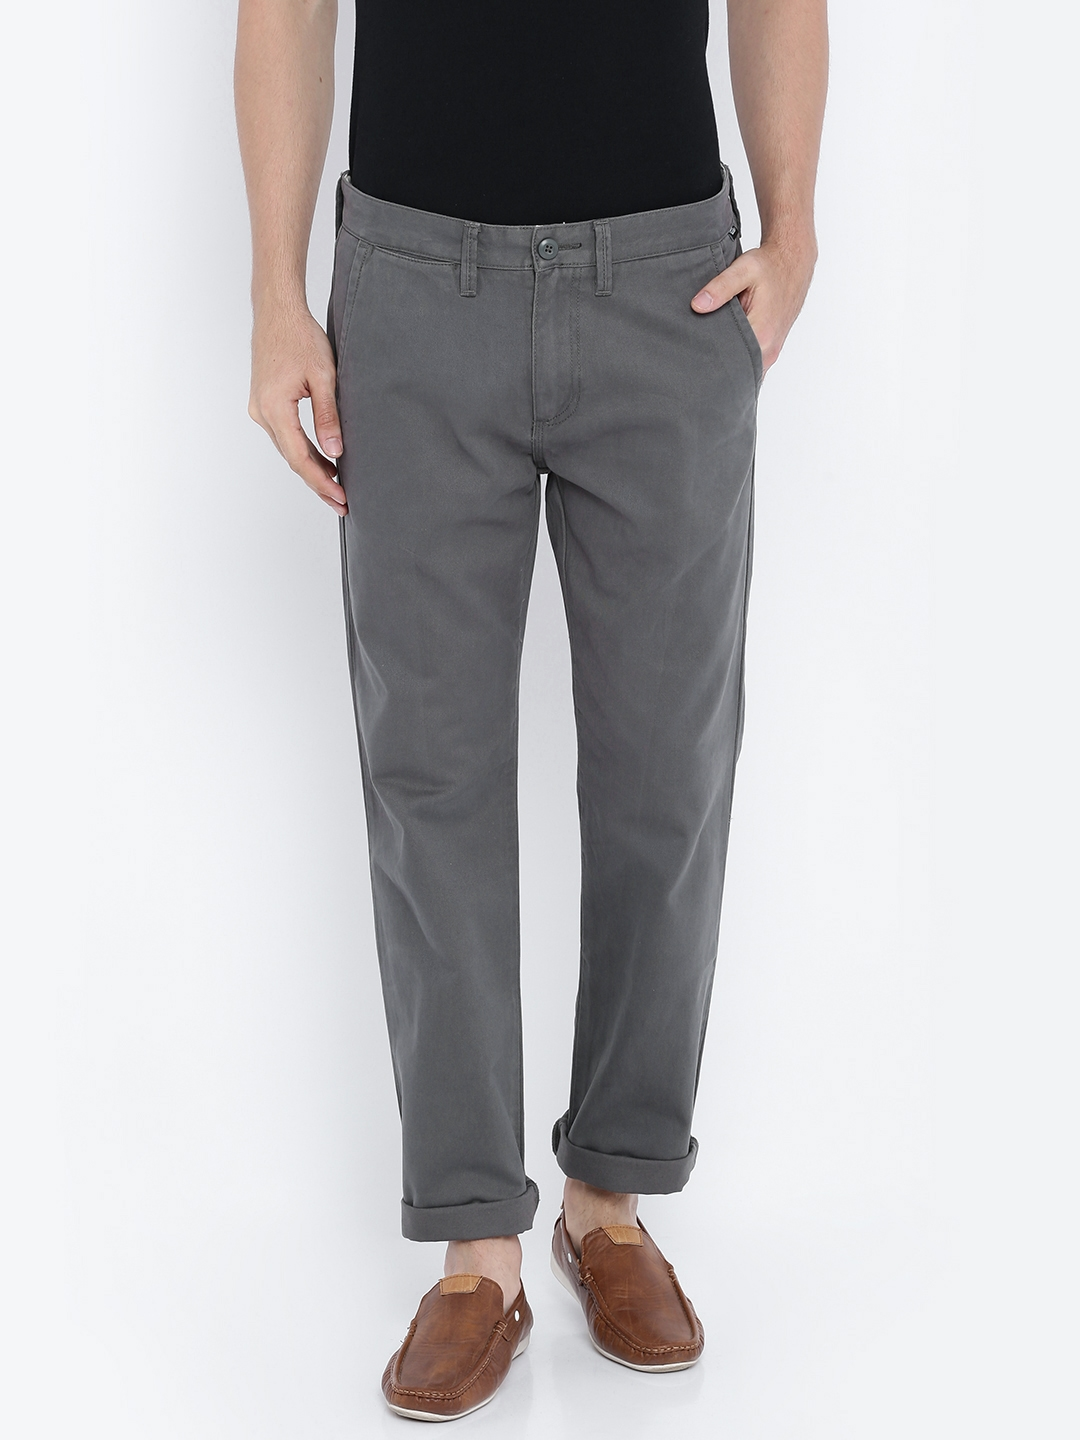 782a40794a7b Buy Vans Men Grey Chino Trousers - Trousers for Men 1817353